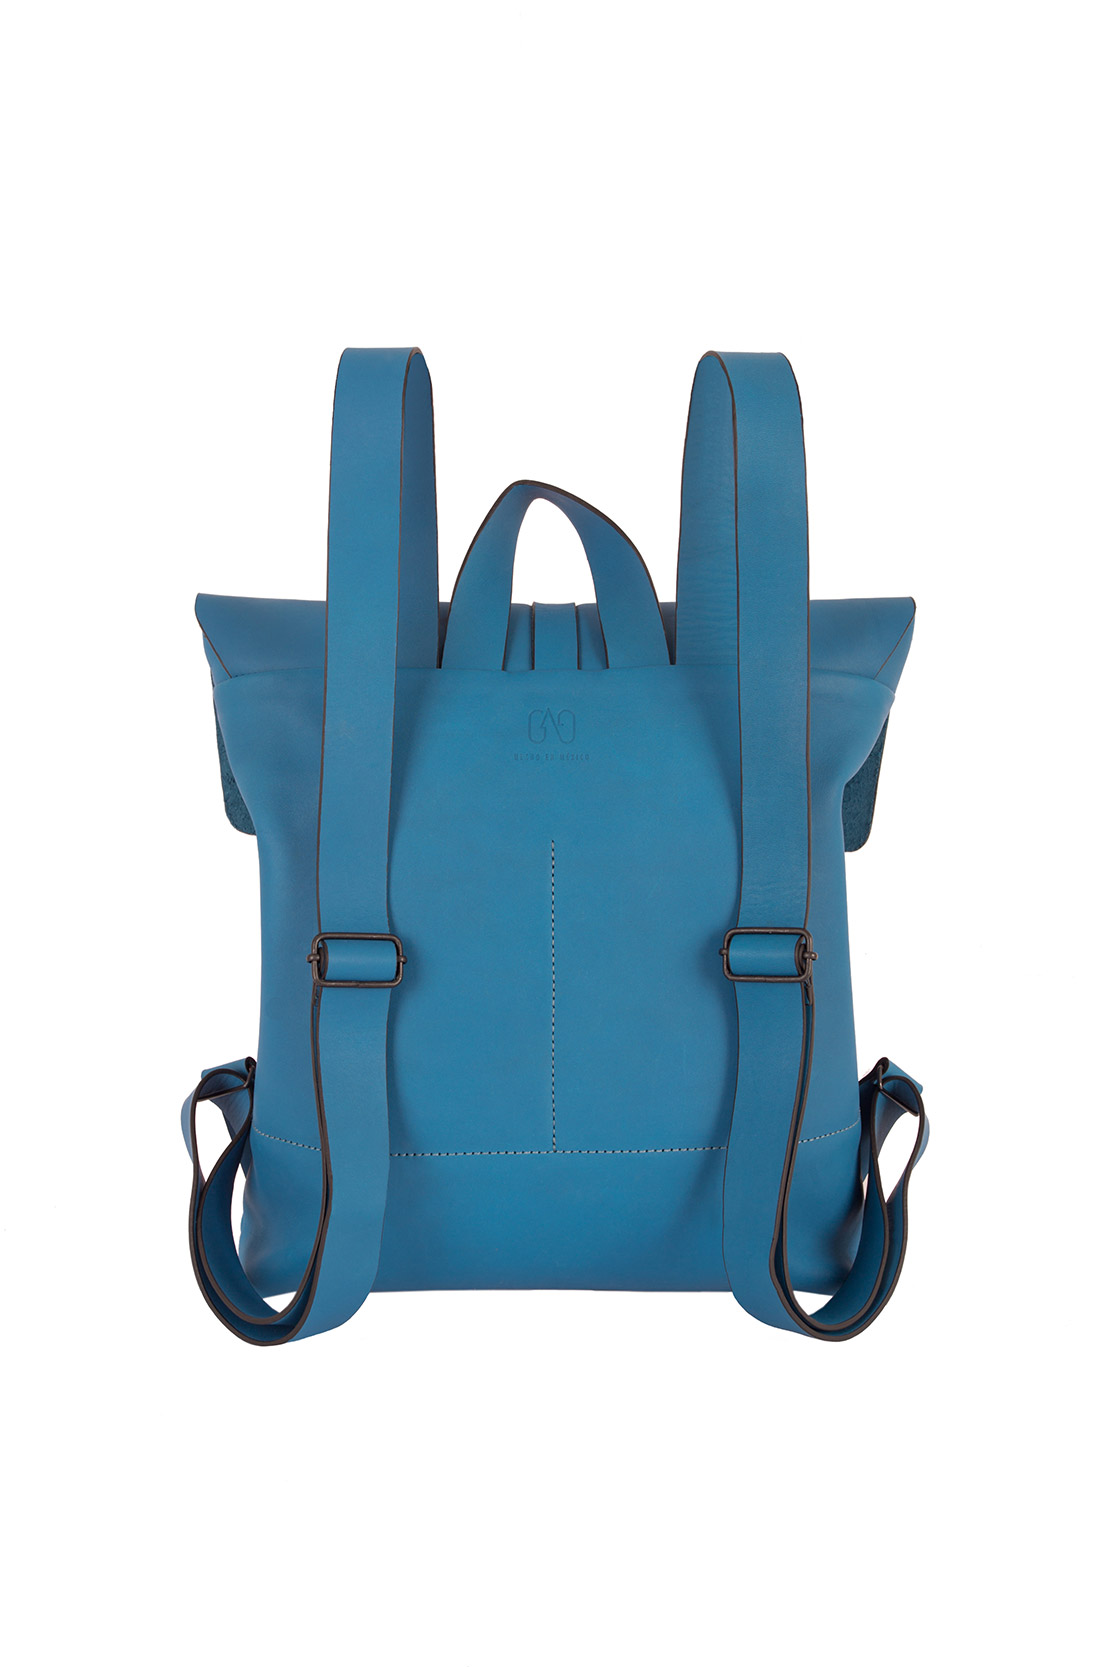 GAG | BACKPACK AZUL